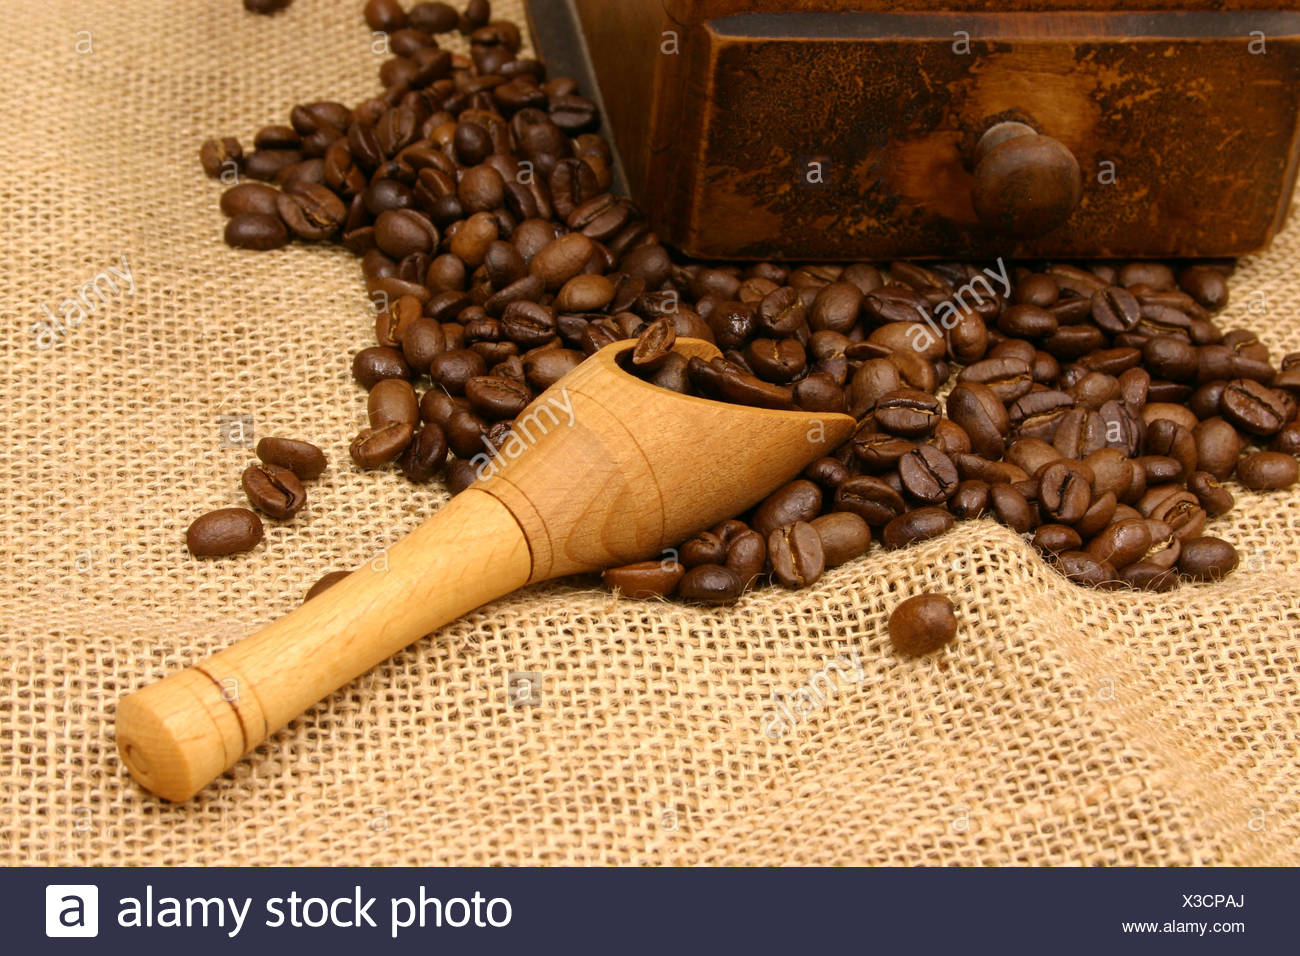 coffee,coffee beans,coffee grinder - Stock Image